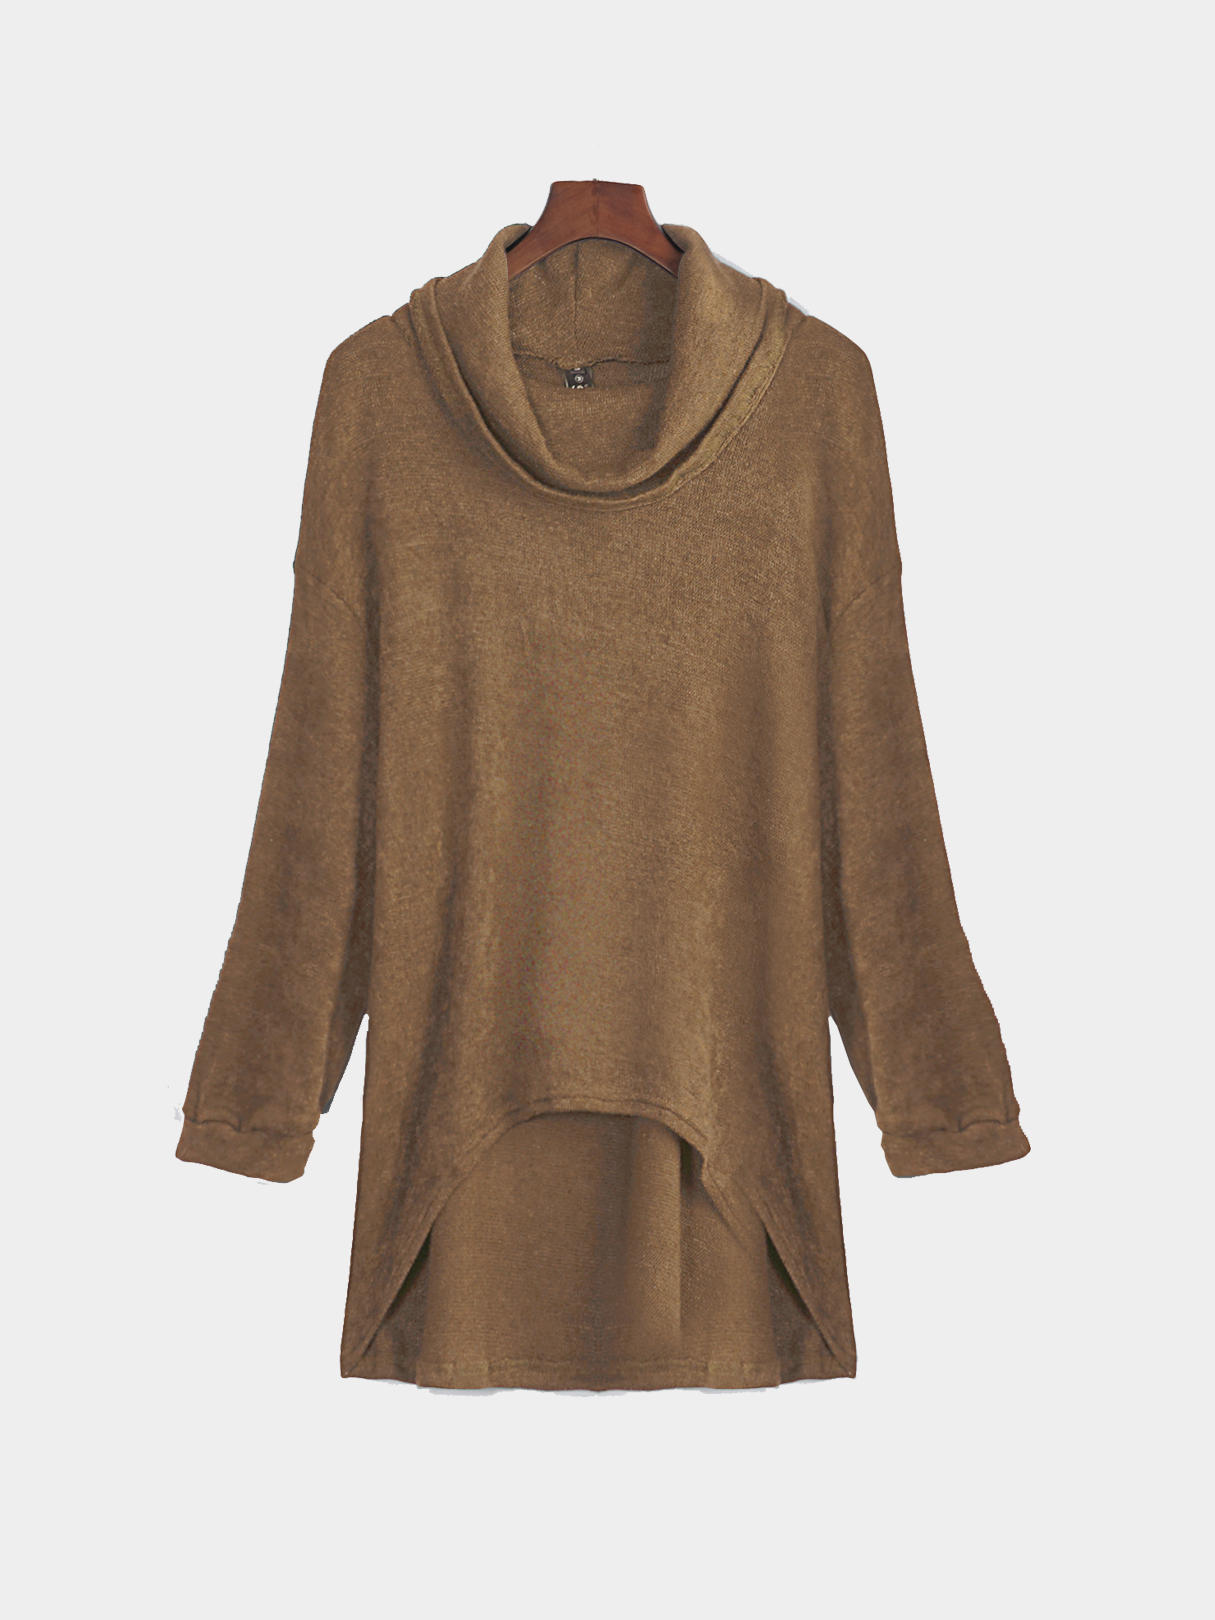 Brown Casual Knitted High Neck Curved Hem Sweater